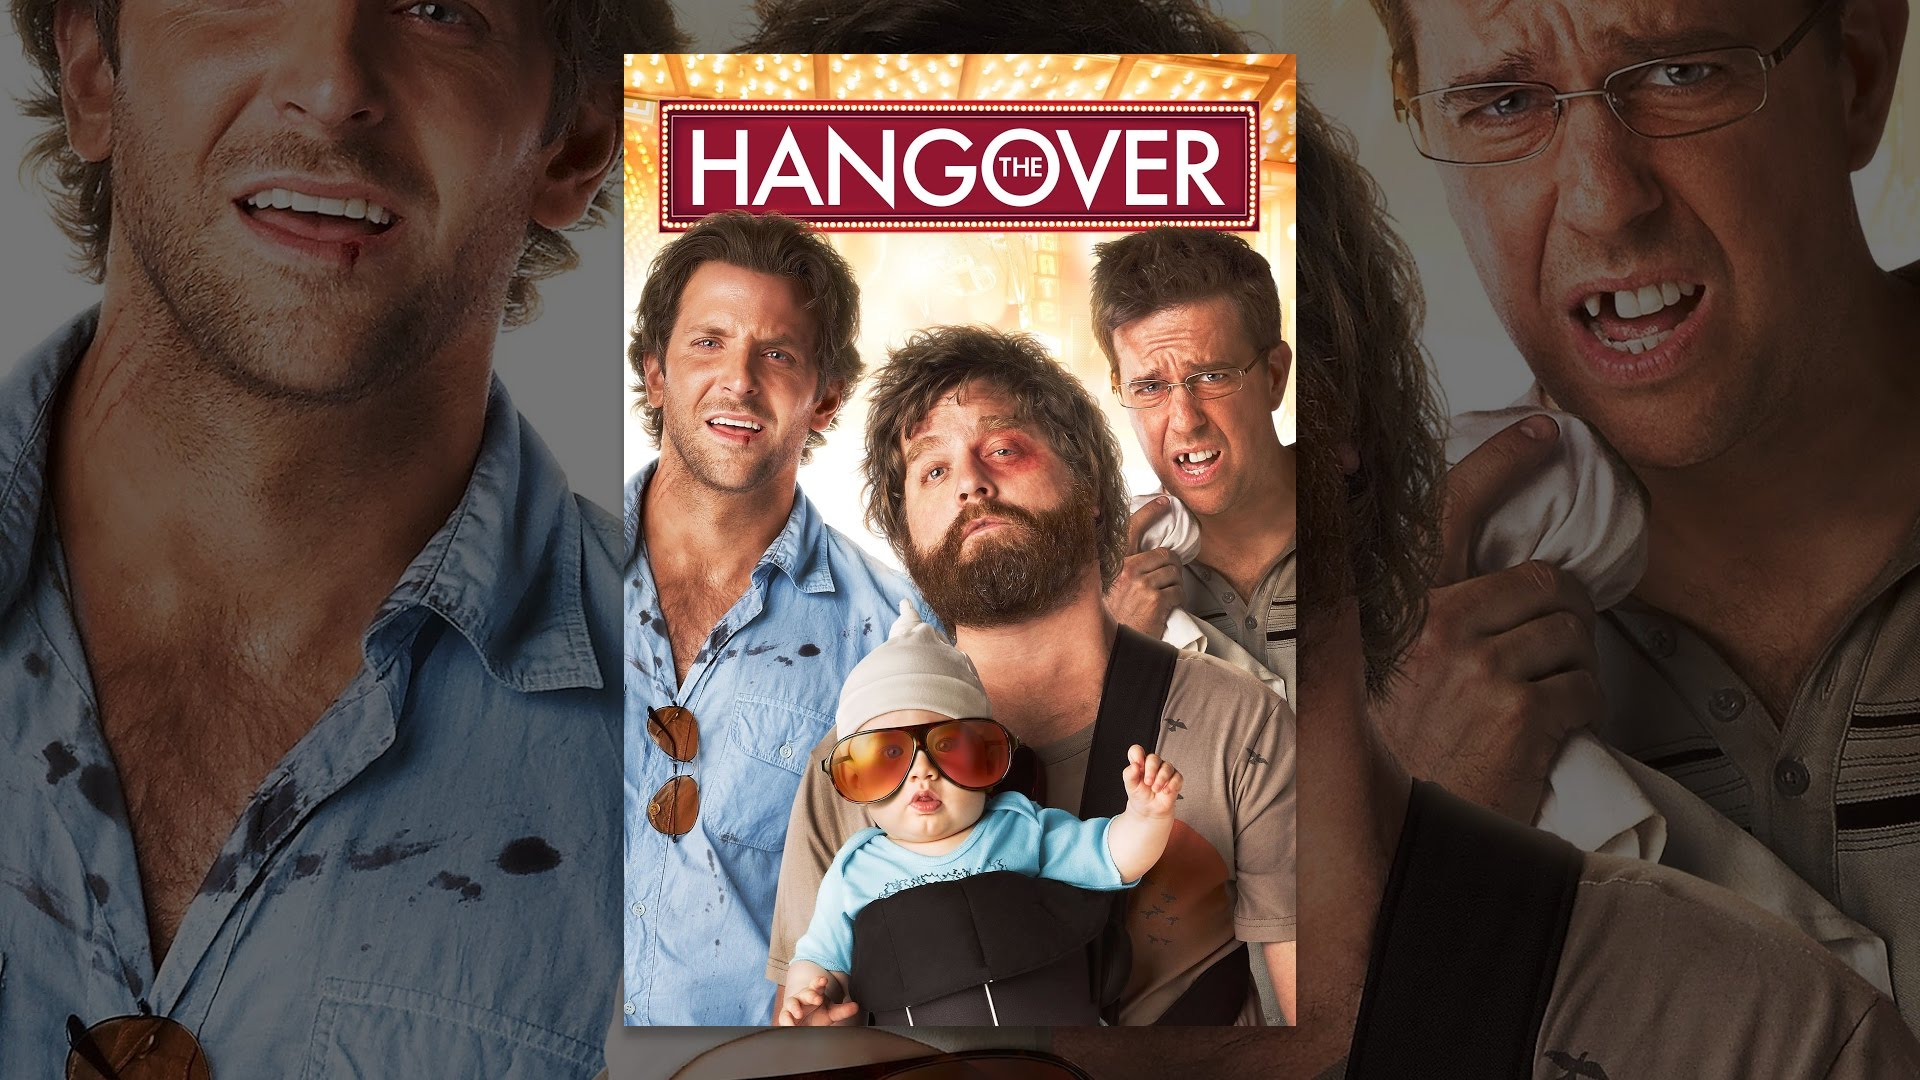 The Hangover Movie Free Online